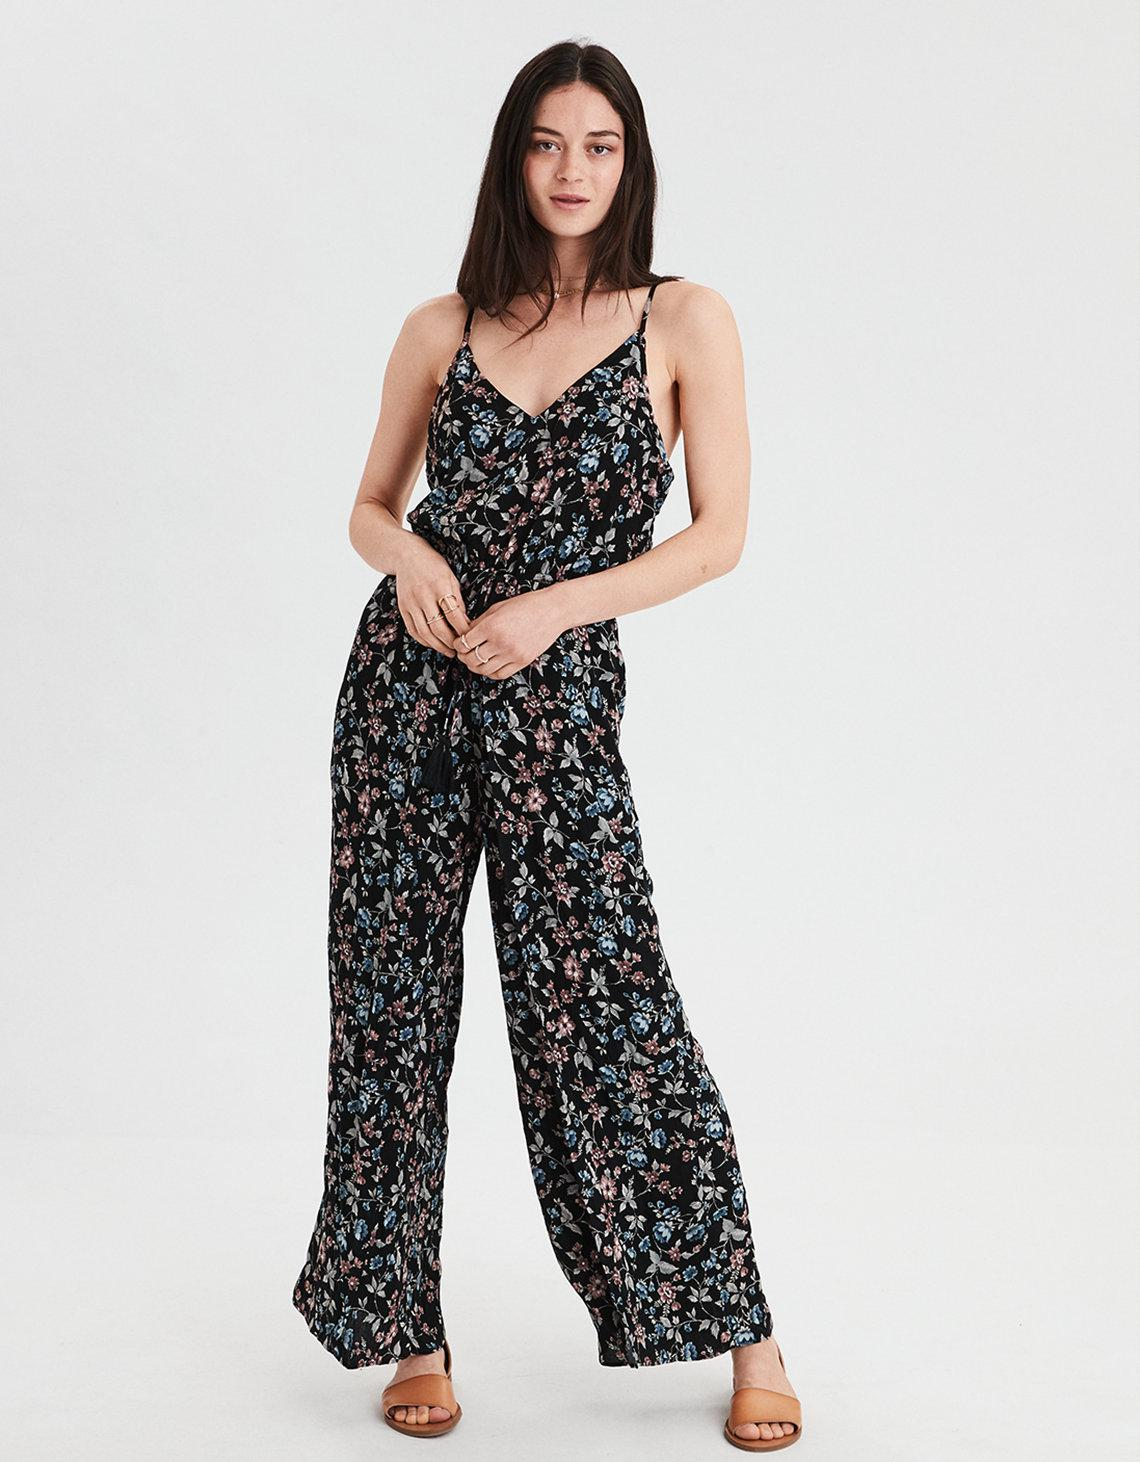 43261ff0bc00 Lyst - American Eagle Ae Strappy Tie Front Jumpsuit in Black